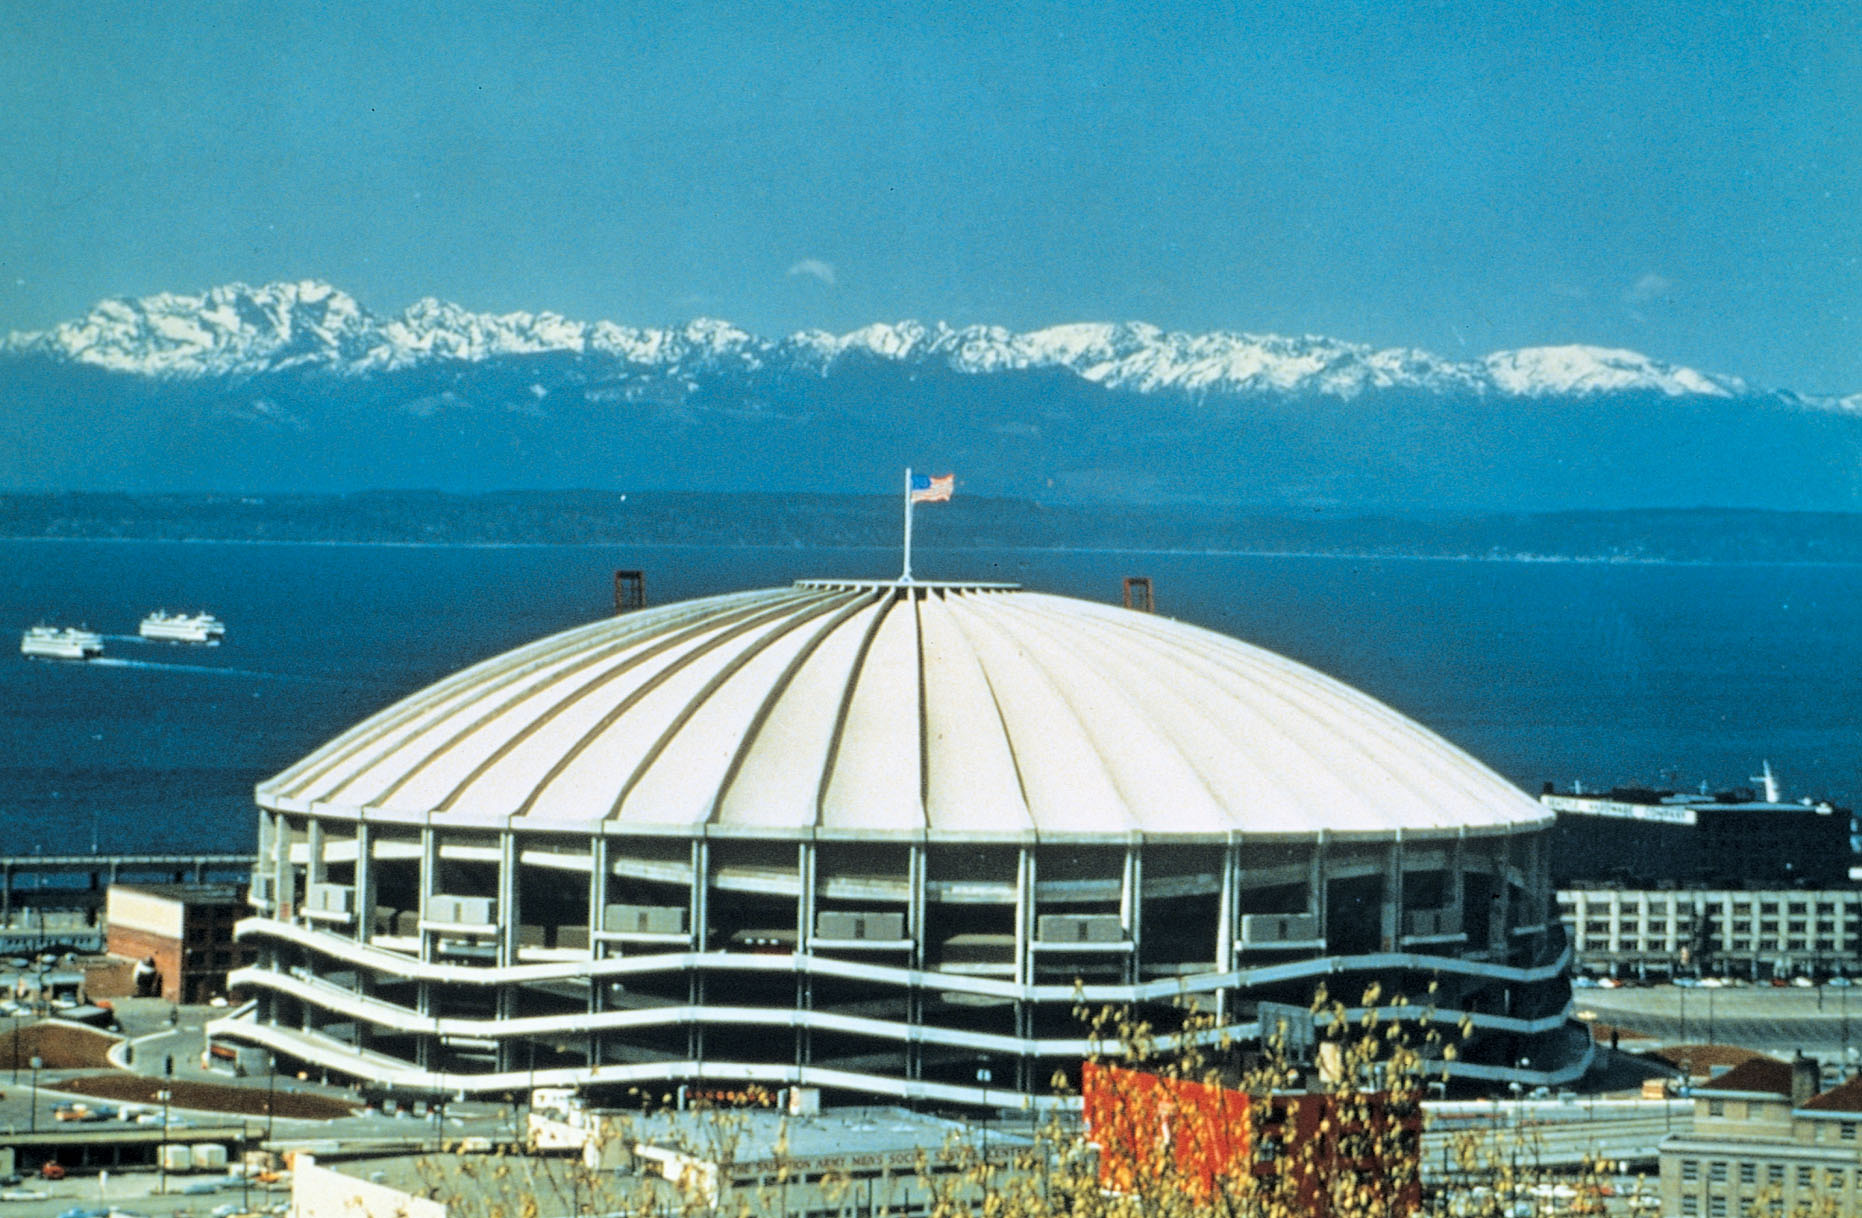 Image of the Kingdome, former home of the Seattle Seahawks.